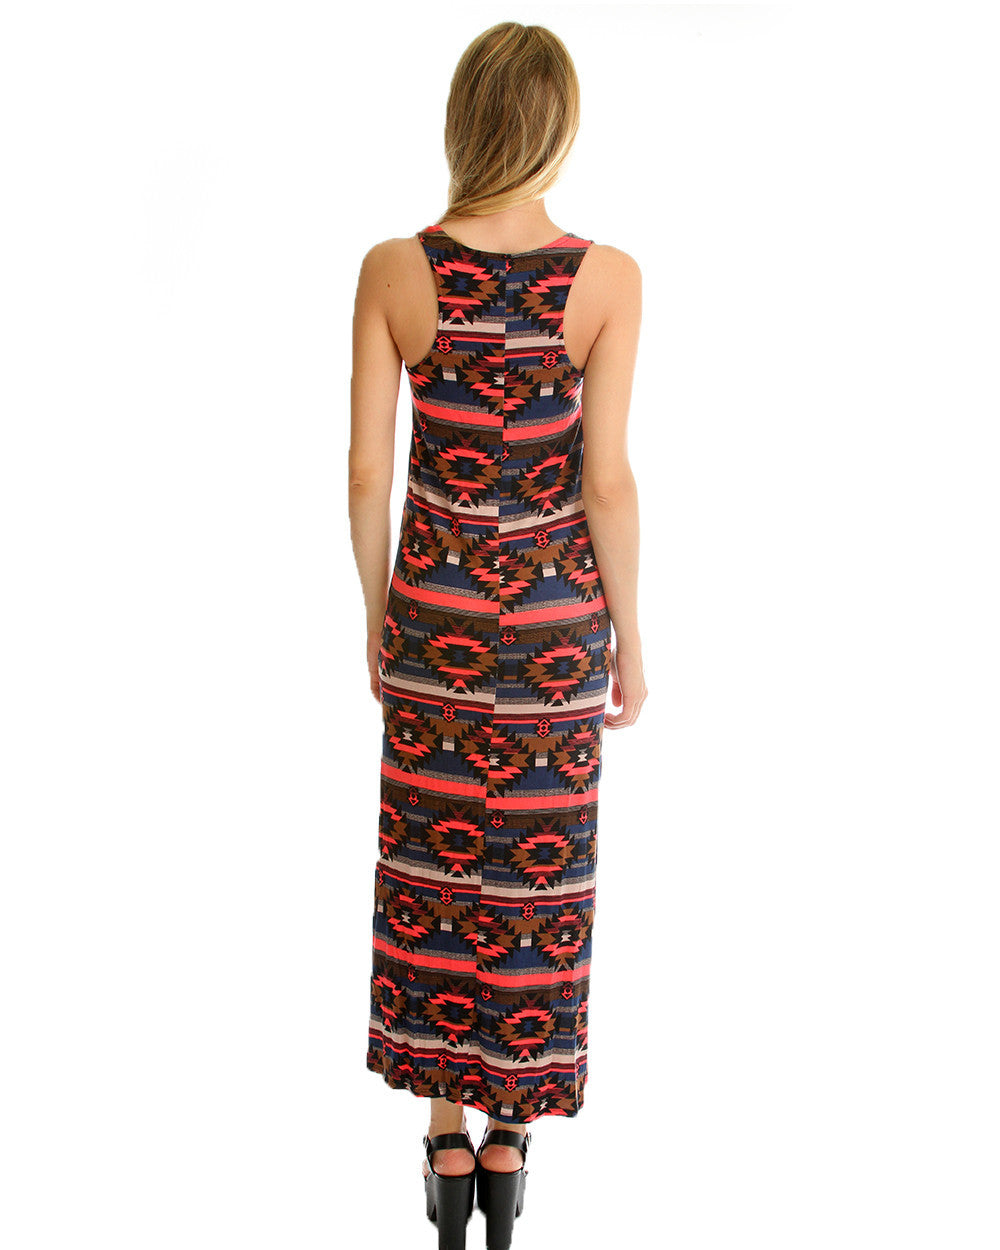 Tribal Print Maxi Dress with leg Slit in Navy & Coral